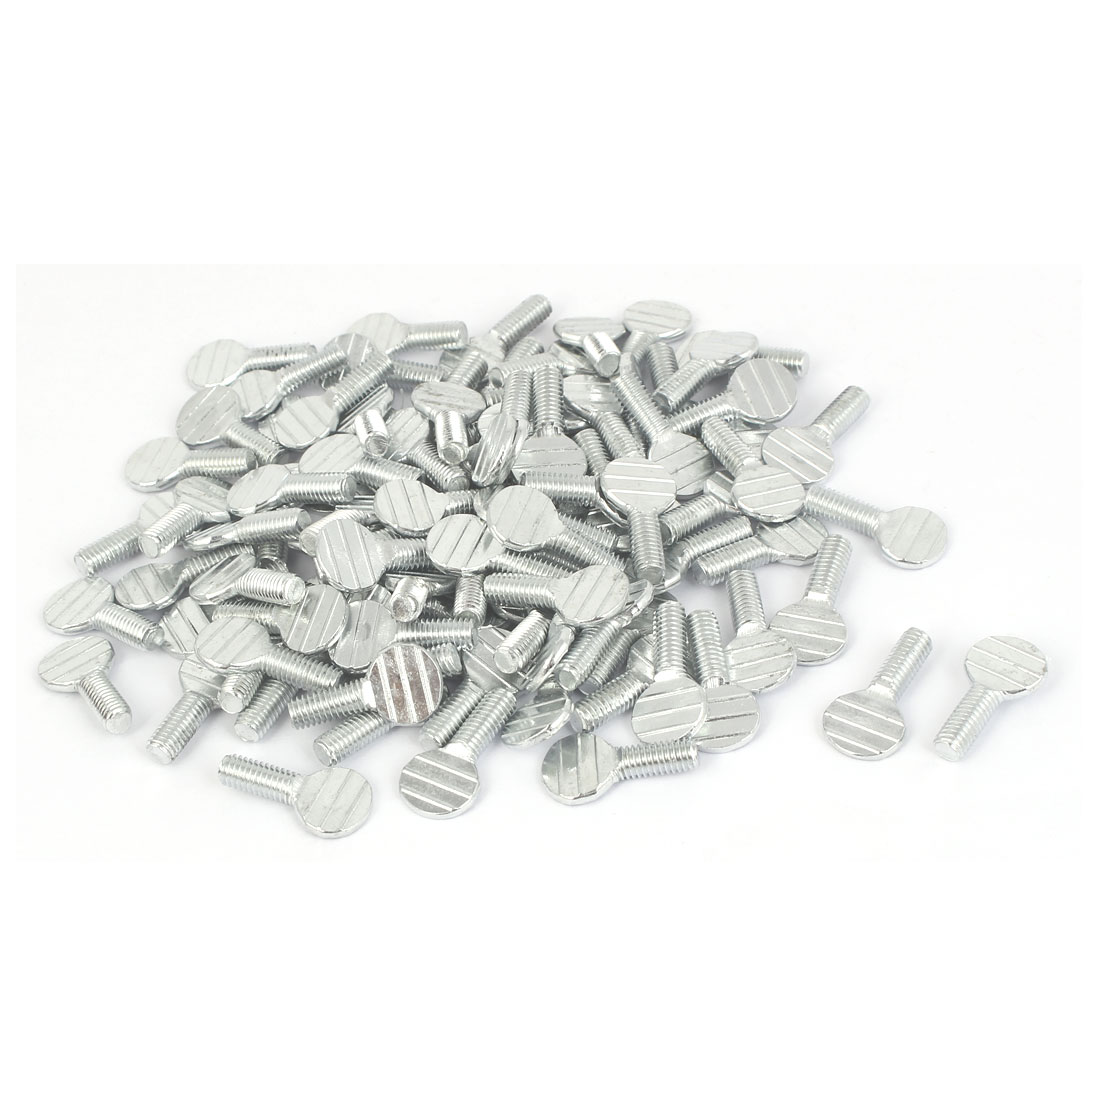 22mm Length M5 x 12mm Machine Threaded Racket Thumb Screws 100 Pcs